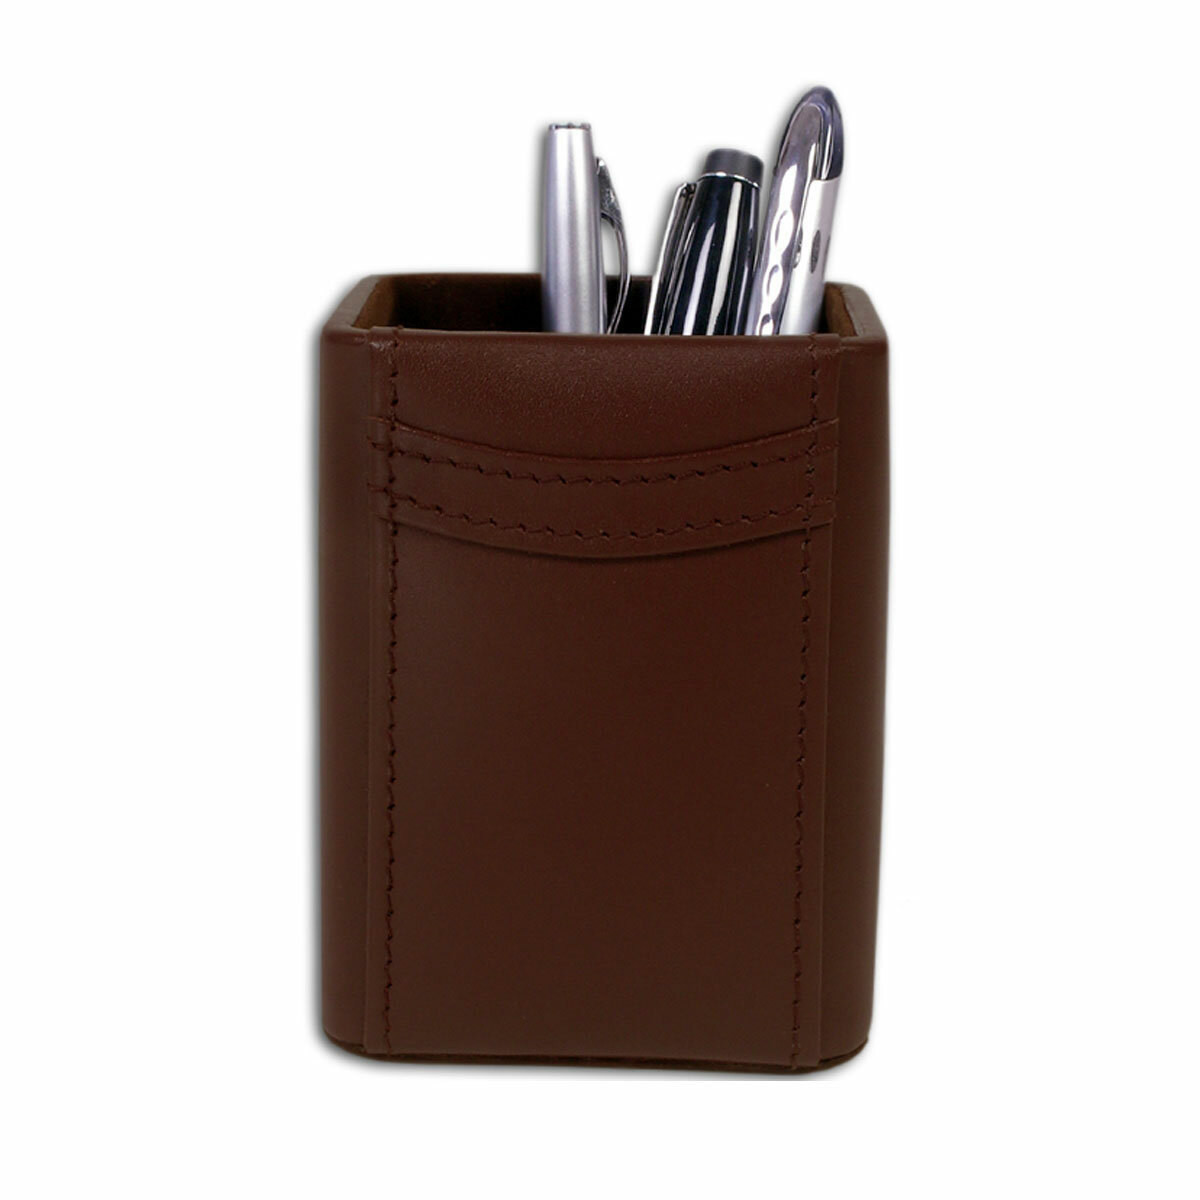 d1f8ef0368 Dacasso 1000 Series Classic Leather Pencil Cup in Chocolate Brown | Wayfair